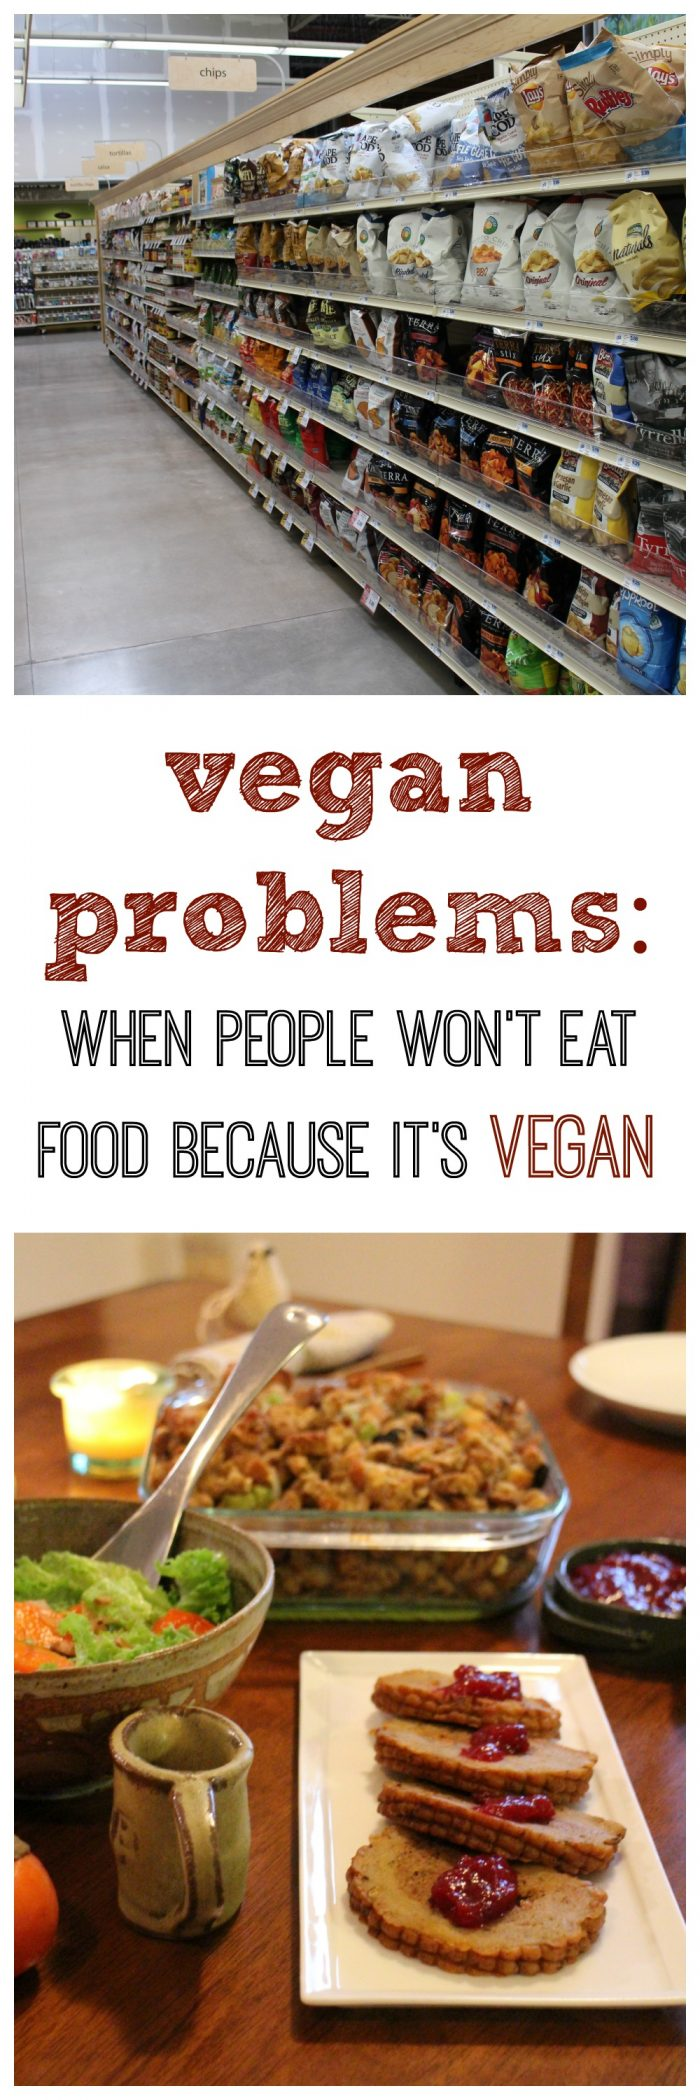 """Vegan food consists of food that everyone eats - fruits, vegetables, beans, nuts, and seeds. However, some people are immediately distrustful and put off by """"vegan food."""" Some people won't even taste it. That can be especially tricky at potlucks and holidays like Thanksgiving. Here's what I do when cooking for non-vegans. 